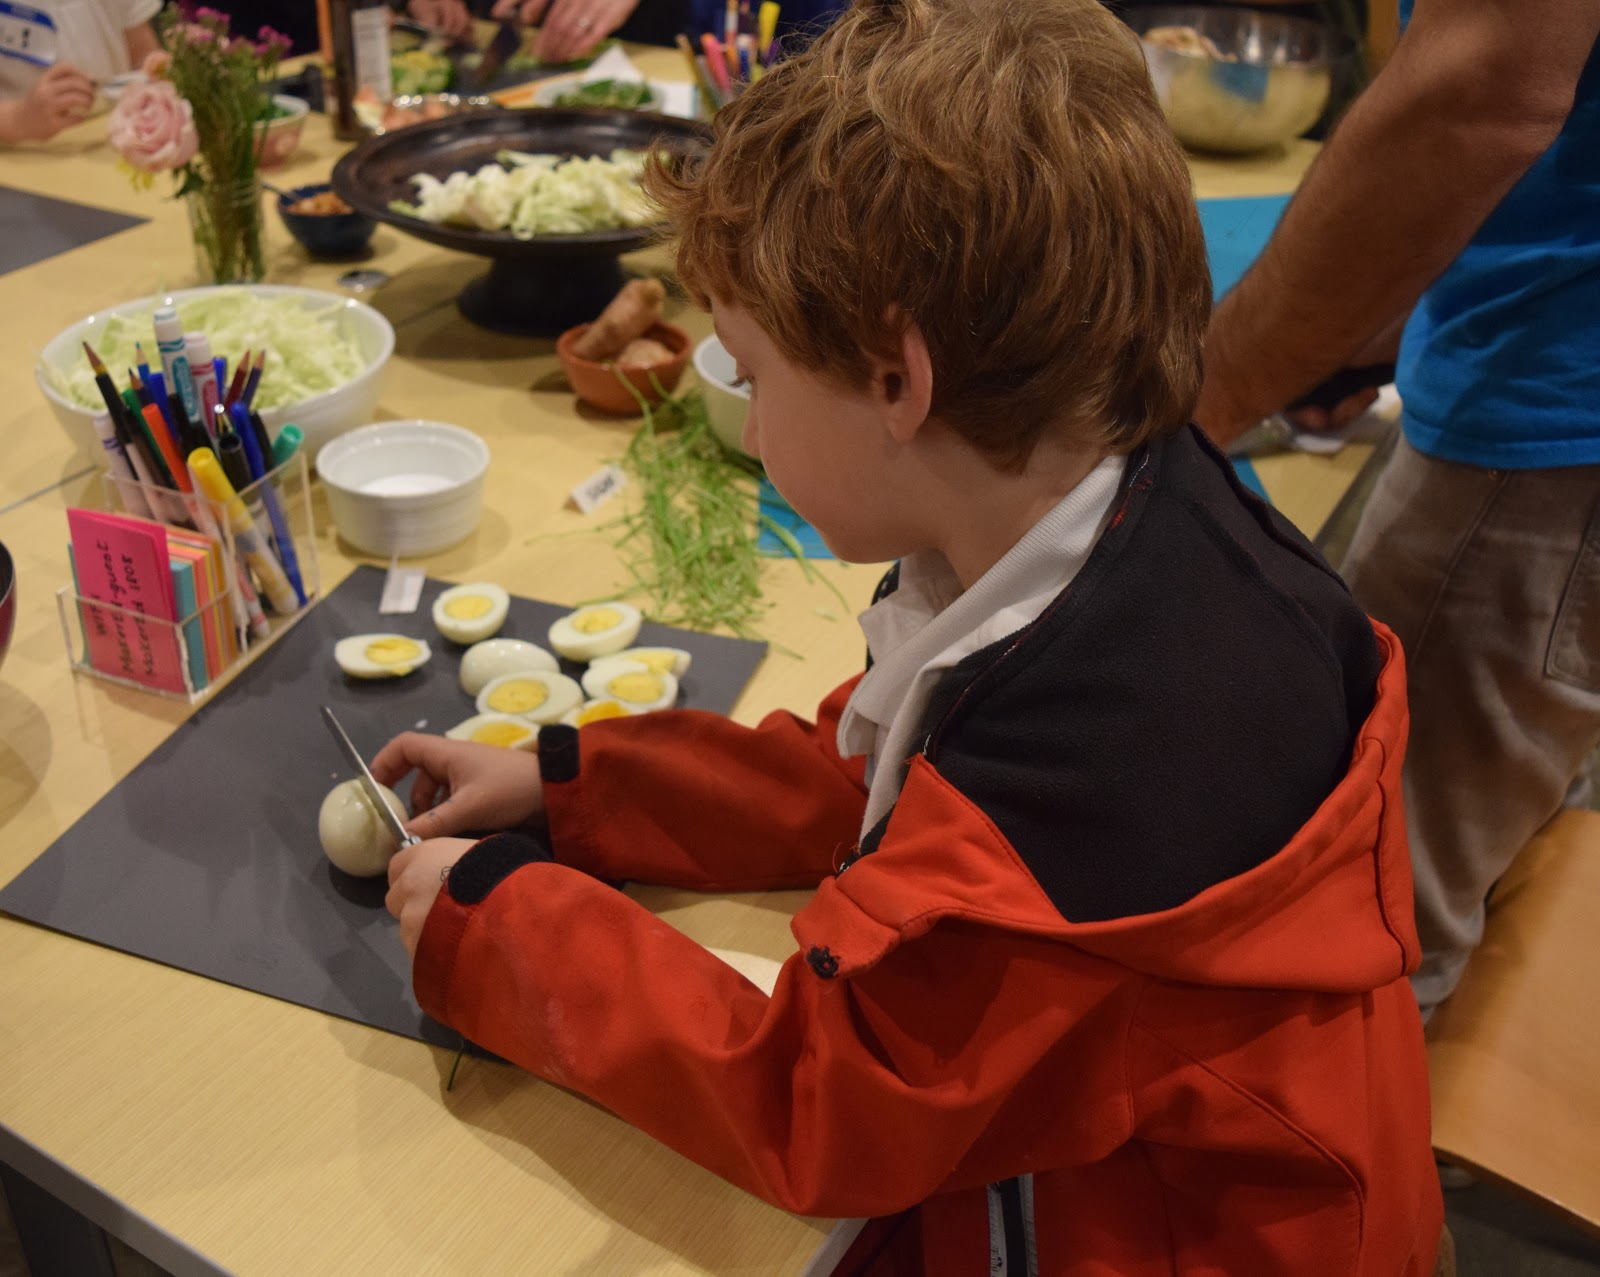 A photograph of a child, wearing a windbreaker, demonstrating the proper knife technique to cut hard-boiled eggs in half.